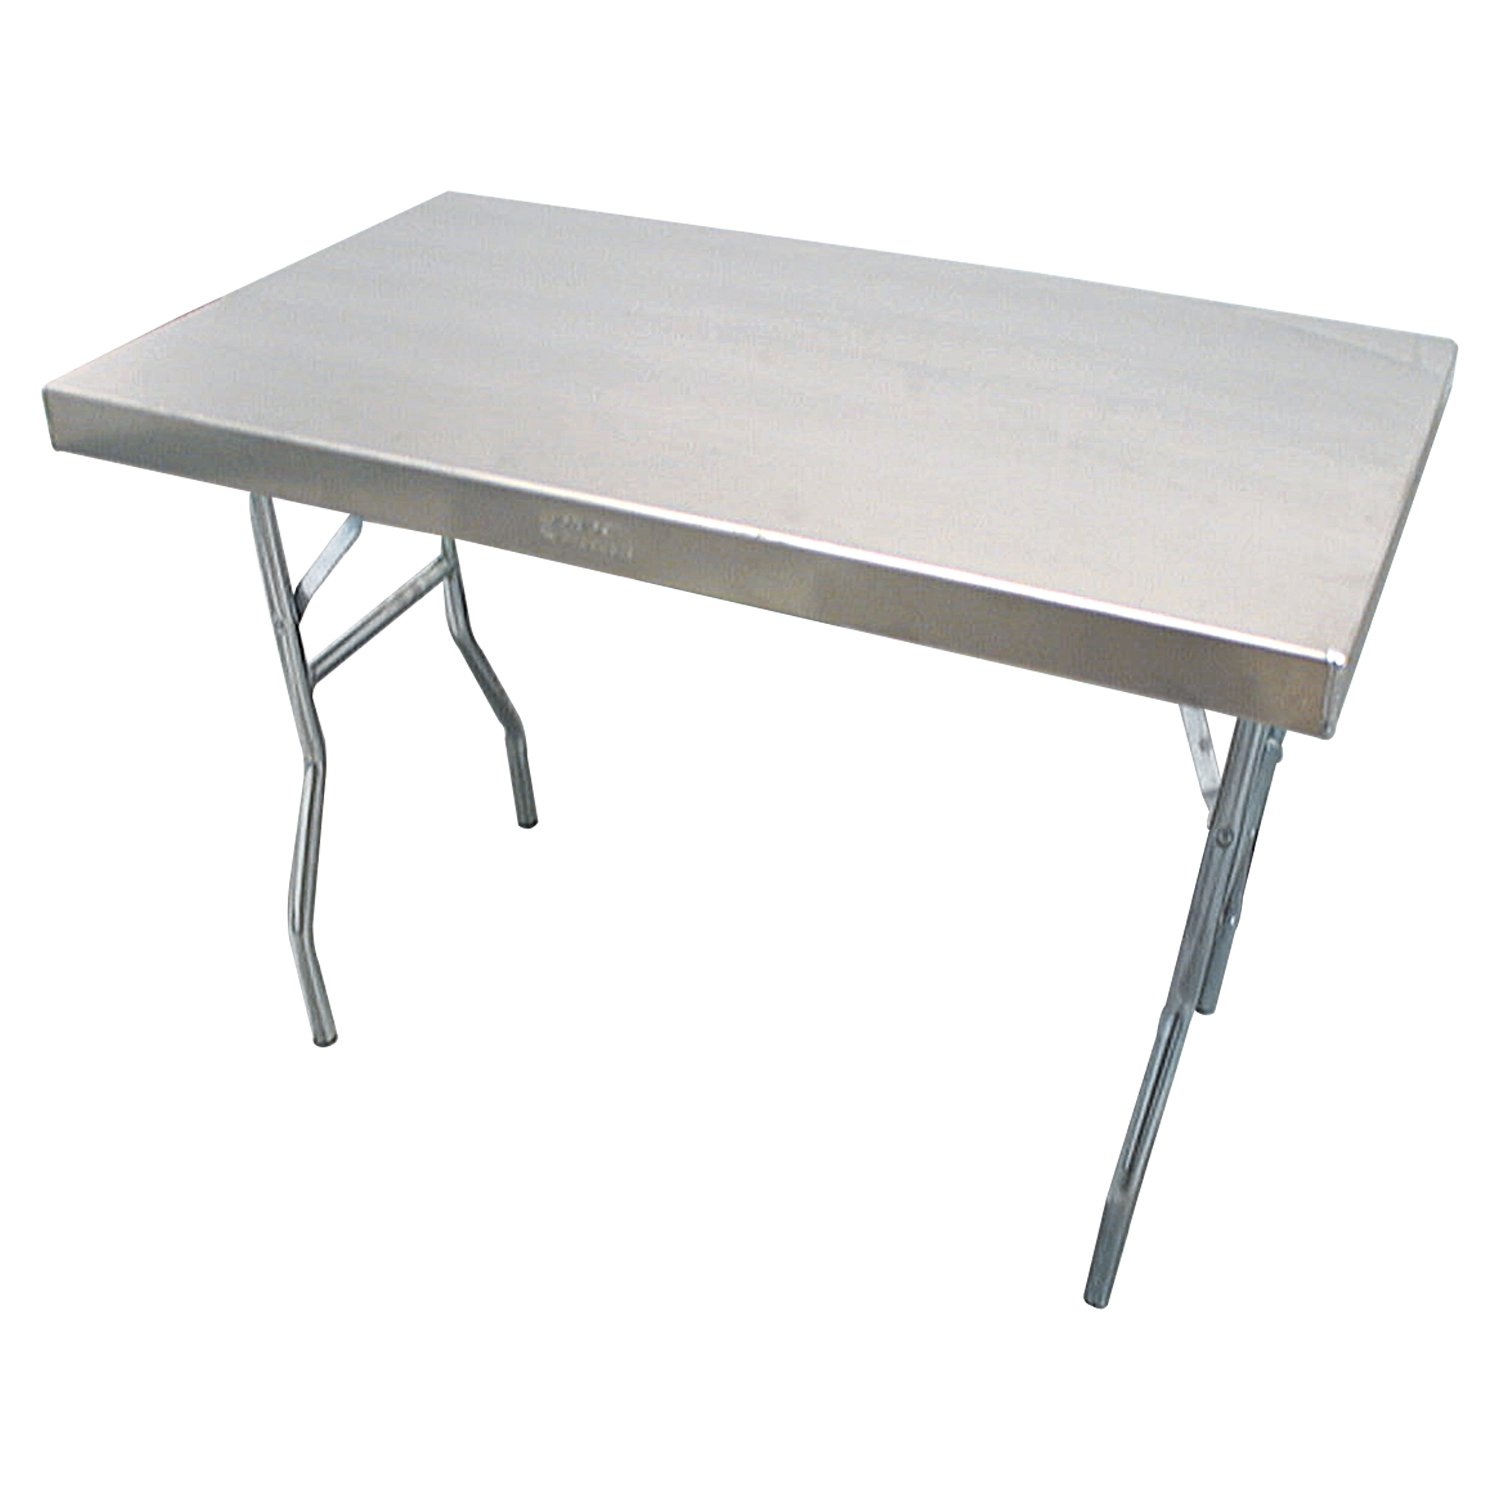 Pit Pal Products 155 31'' x 72'' Aluminum Work Table